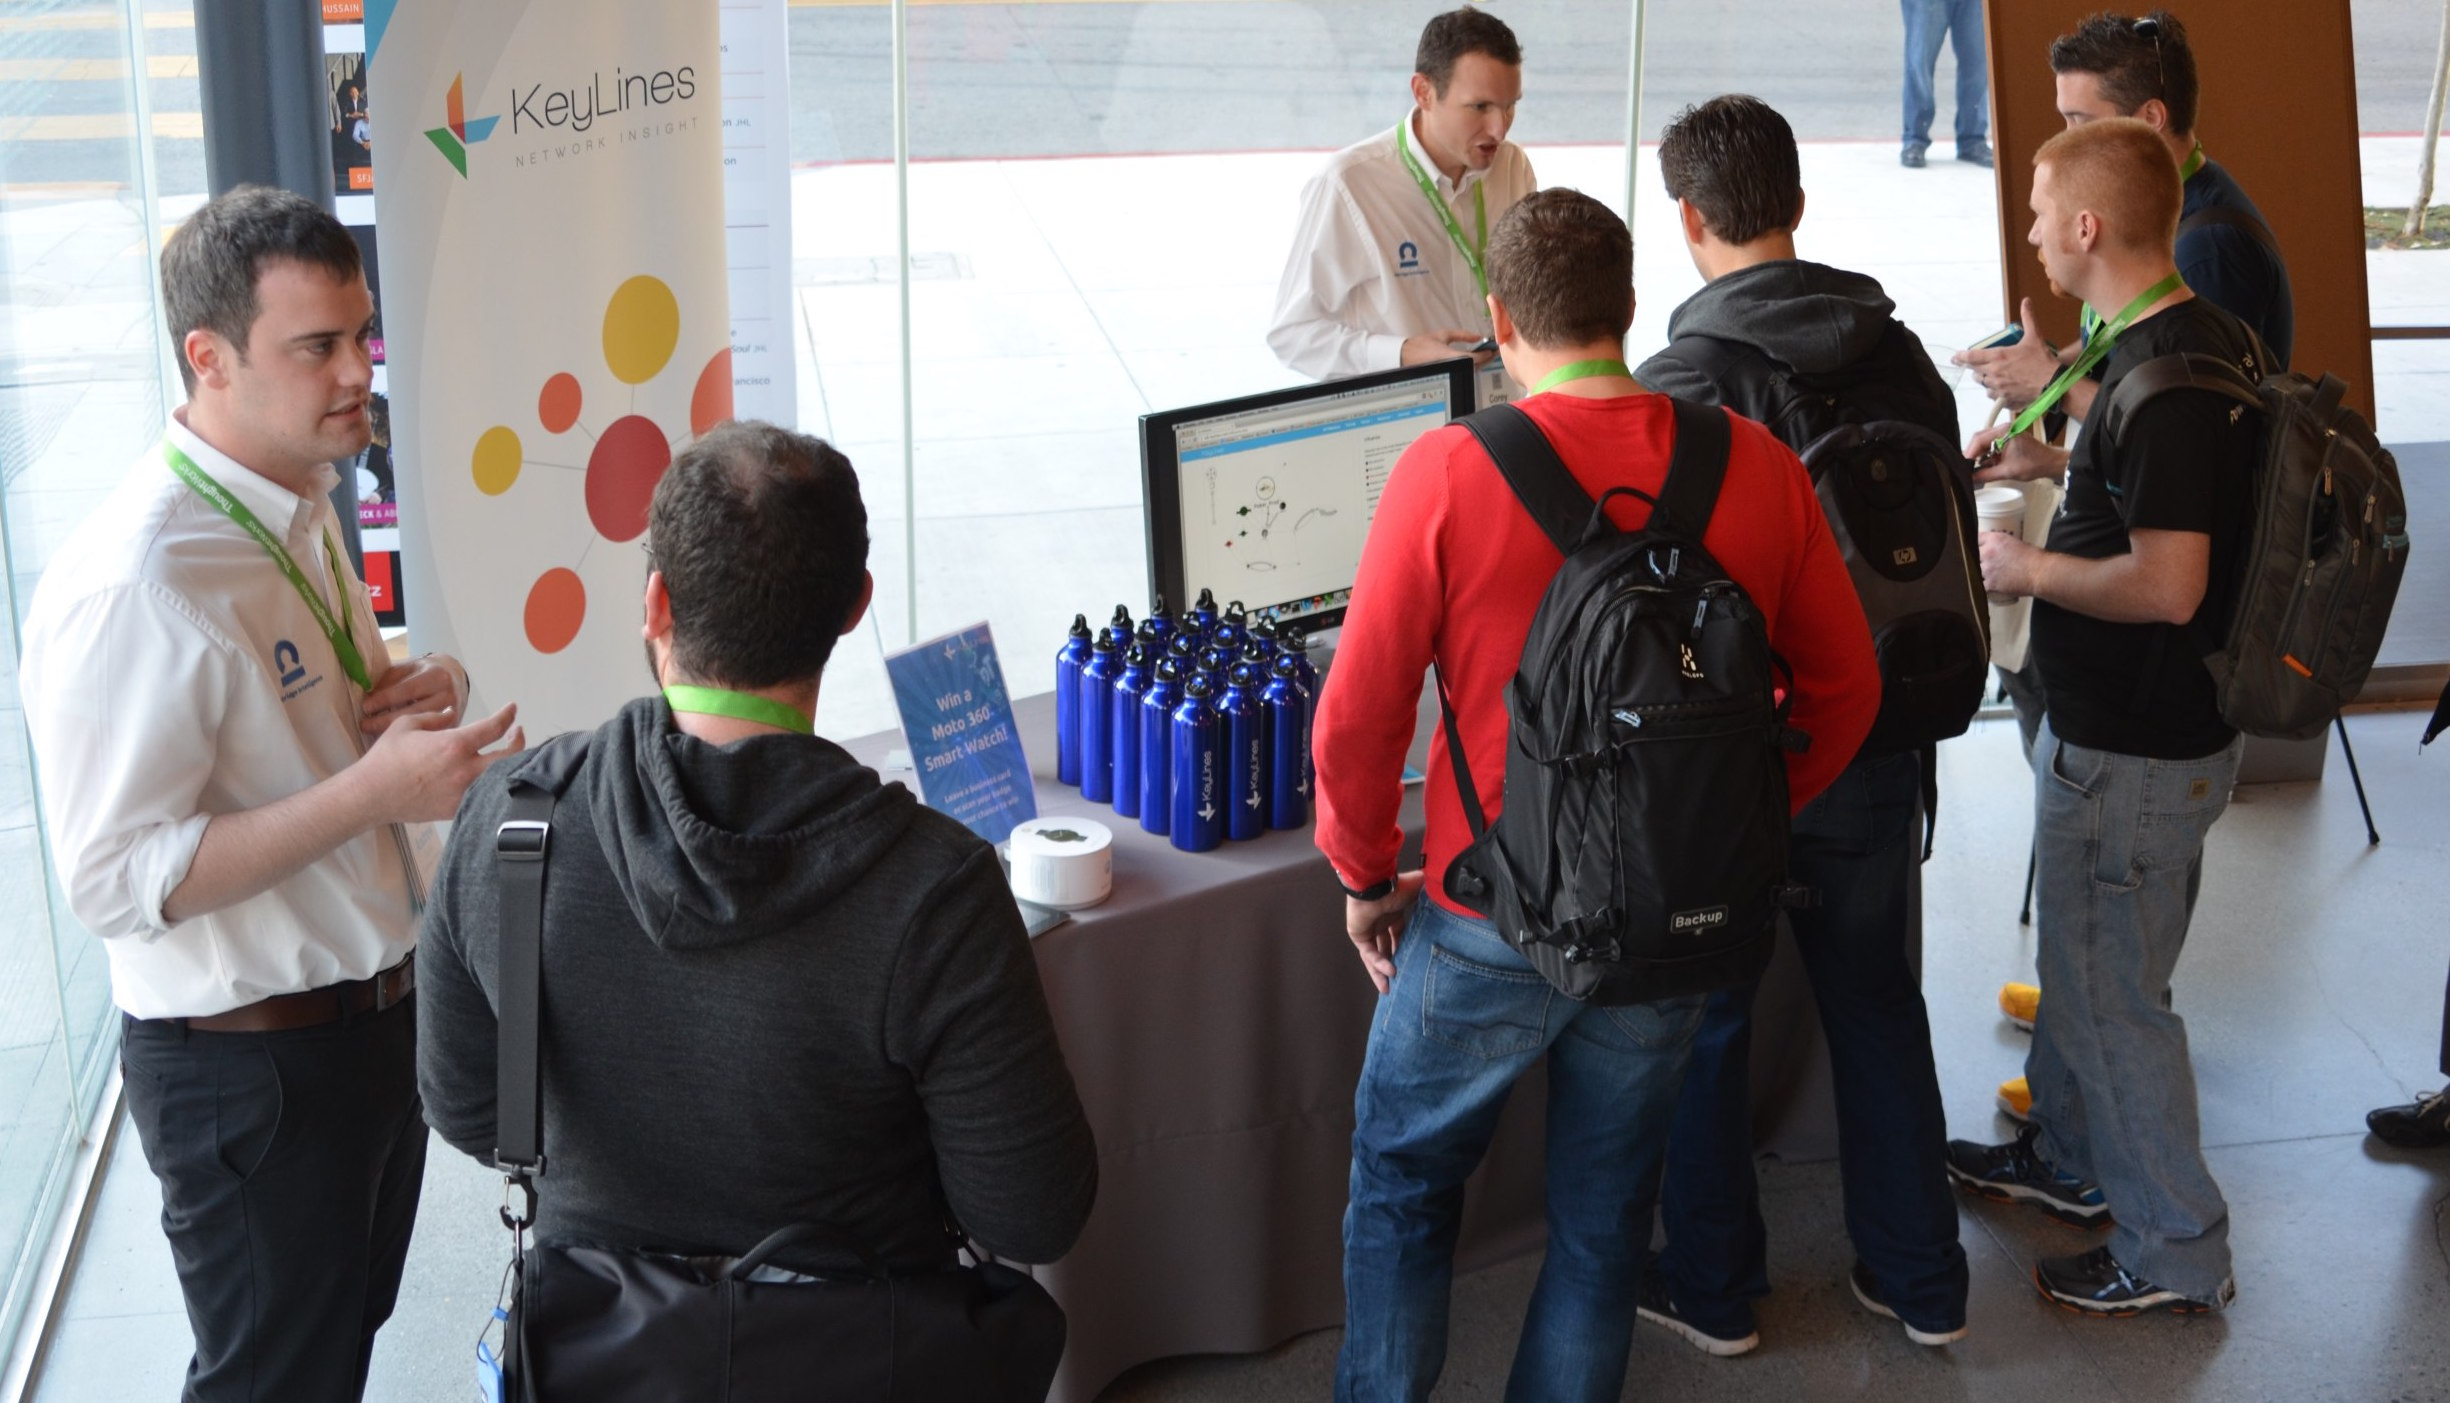 Read These Links to Videos and Articles Posted by the Neo4j Community across the Web